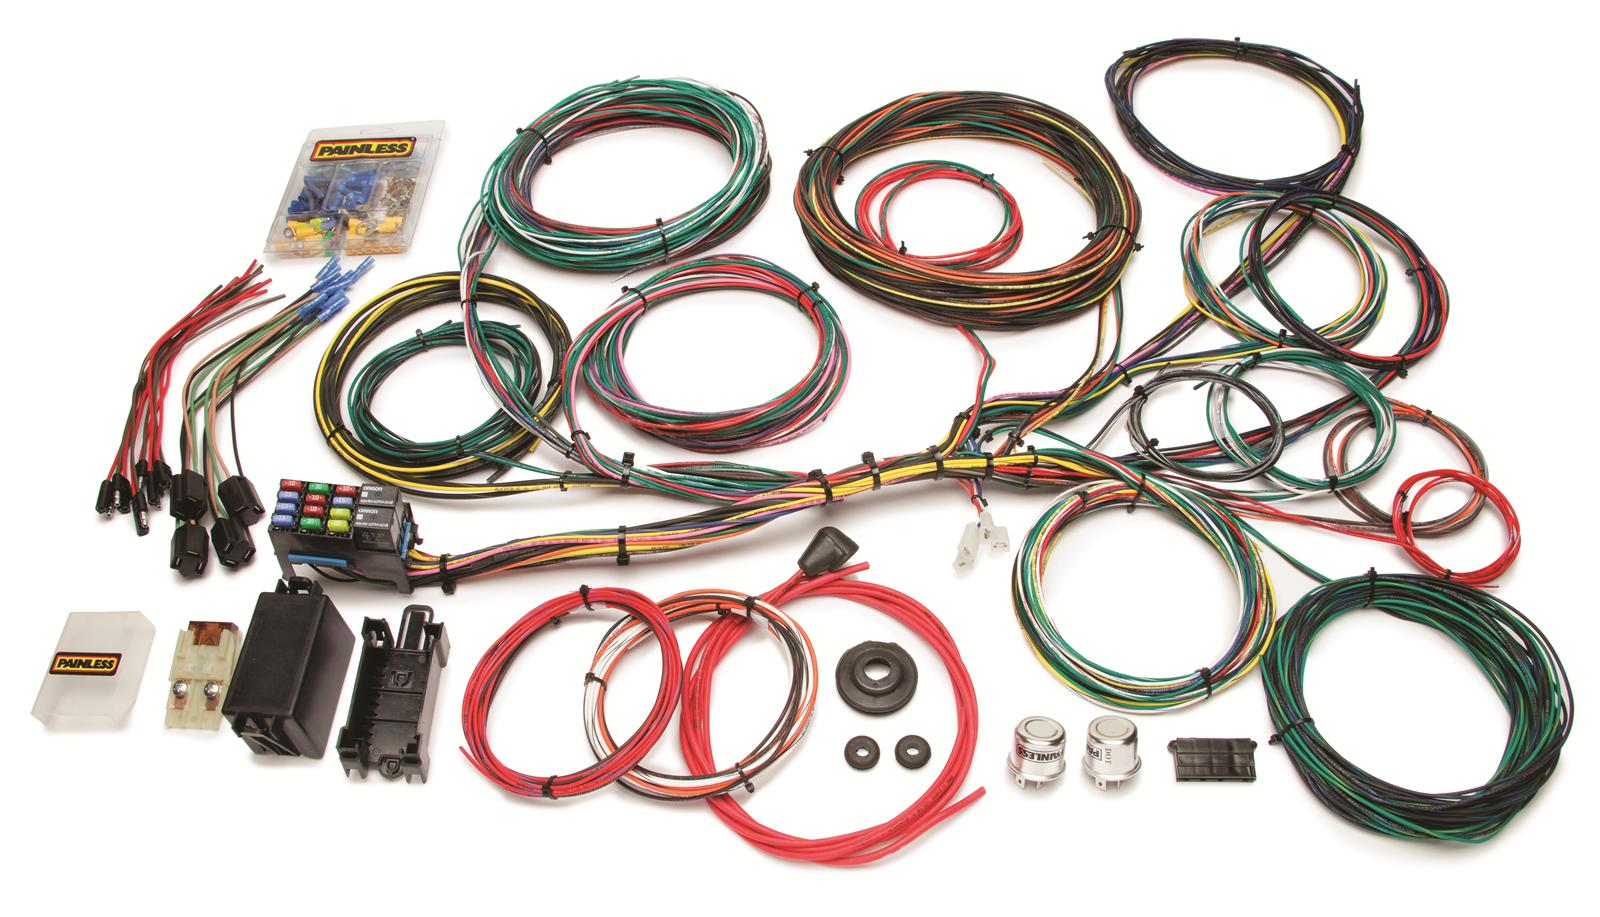 Painless Performance 21 Circuit Ford Color Coded Universal Harnesses Indicator Light Wiring Diagram 10123 Free Shipping On Orders Over 99 At Summit Racing